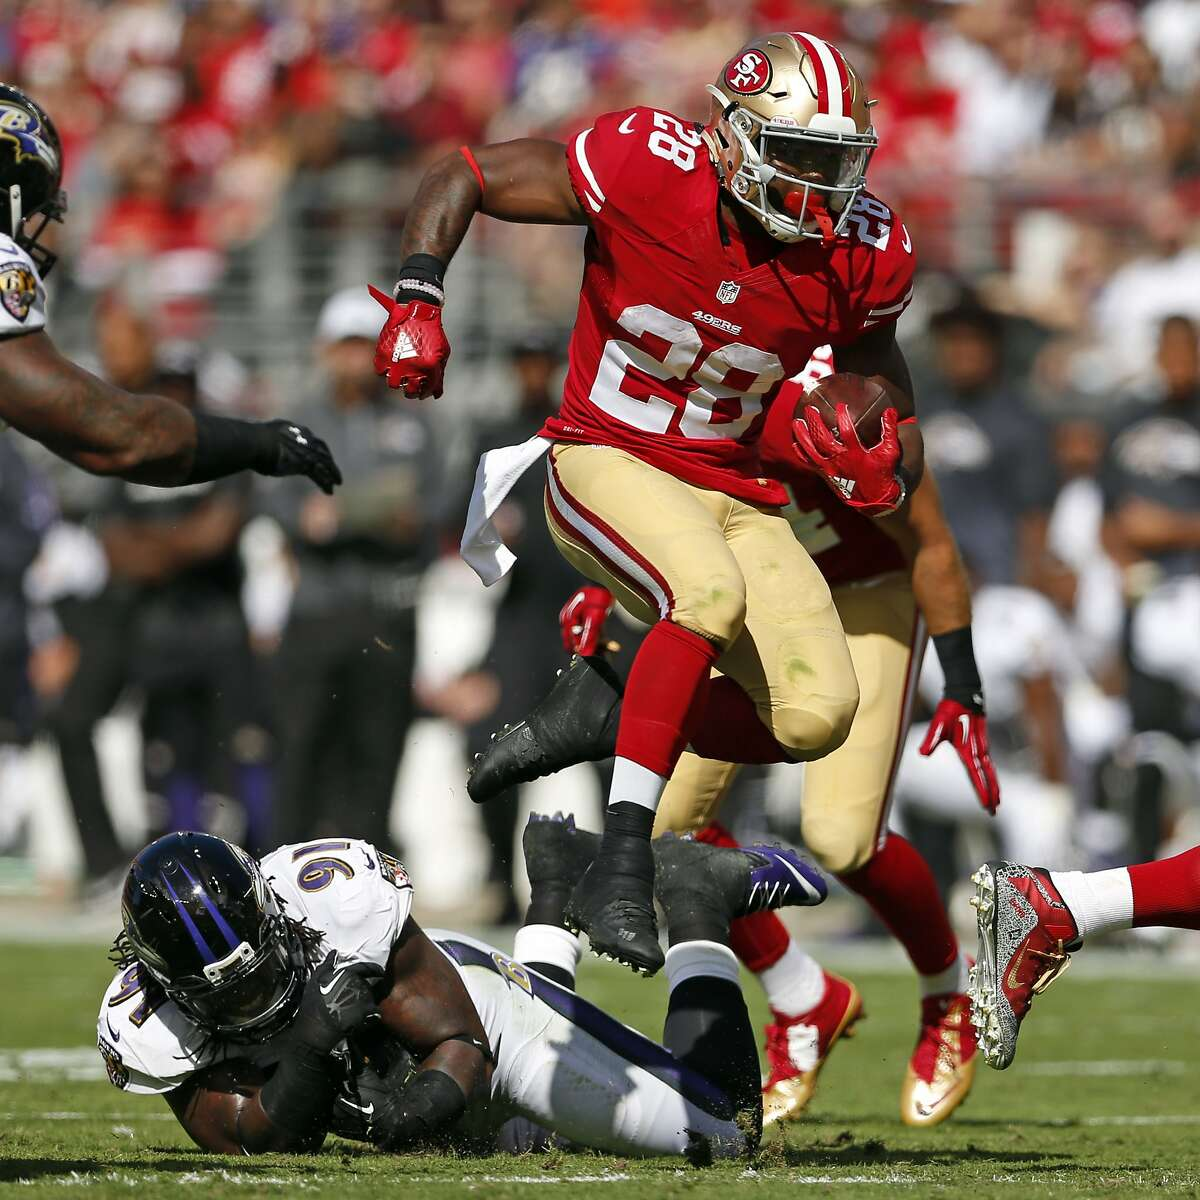 San Francisco 49ers' Carlos Hyde leaps over Baltimore Ravens' Courtney Upshaw in 1st quarter Niners' 25-20 win during NFL game at Levi's Stadium in Santa Clara, Calif., on Sunday, October 18, 2015.